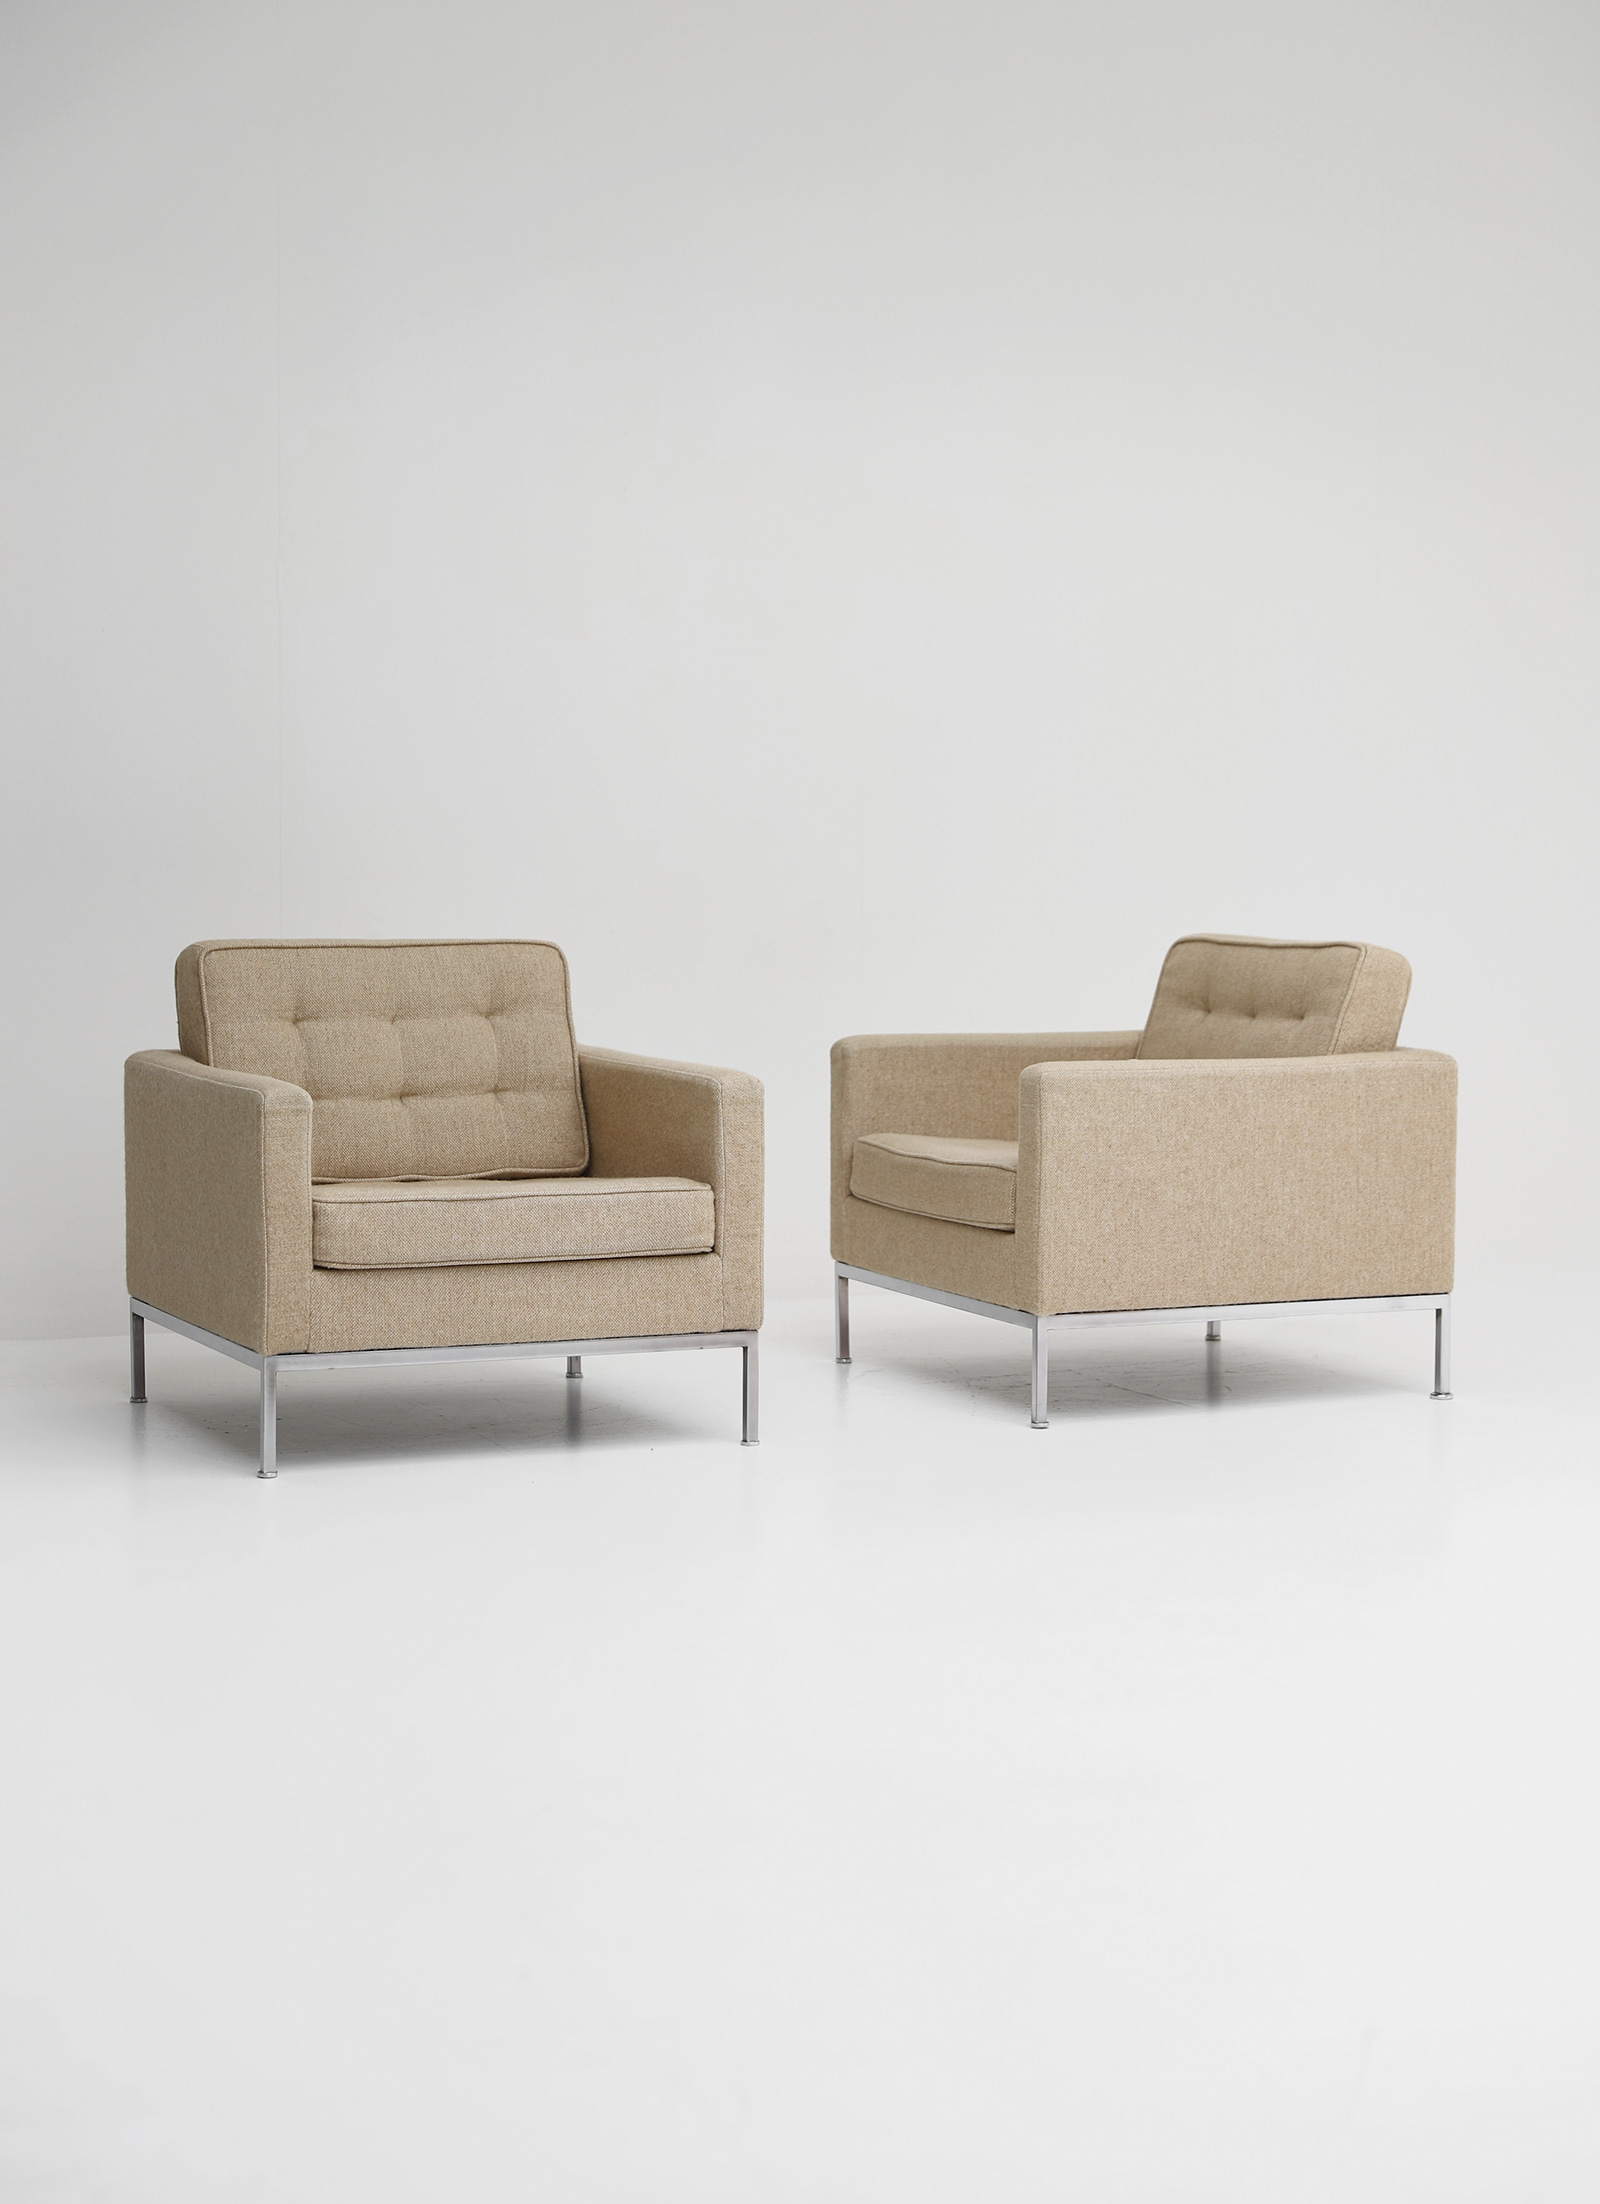 Florence Knoll Arm Chairsimage 13